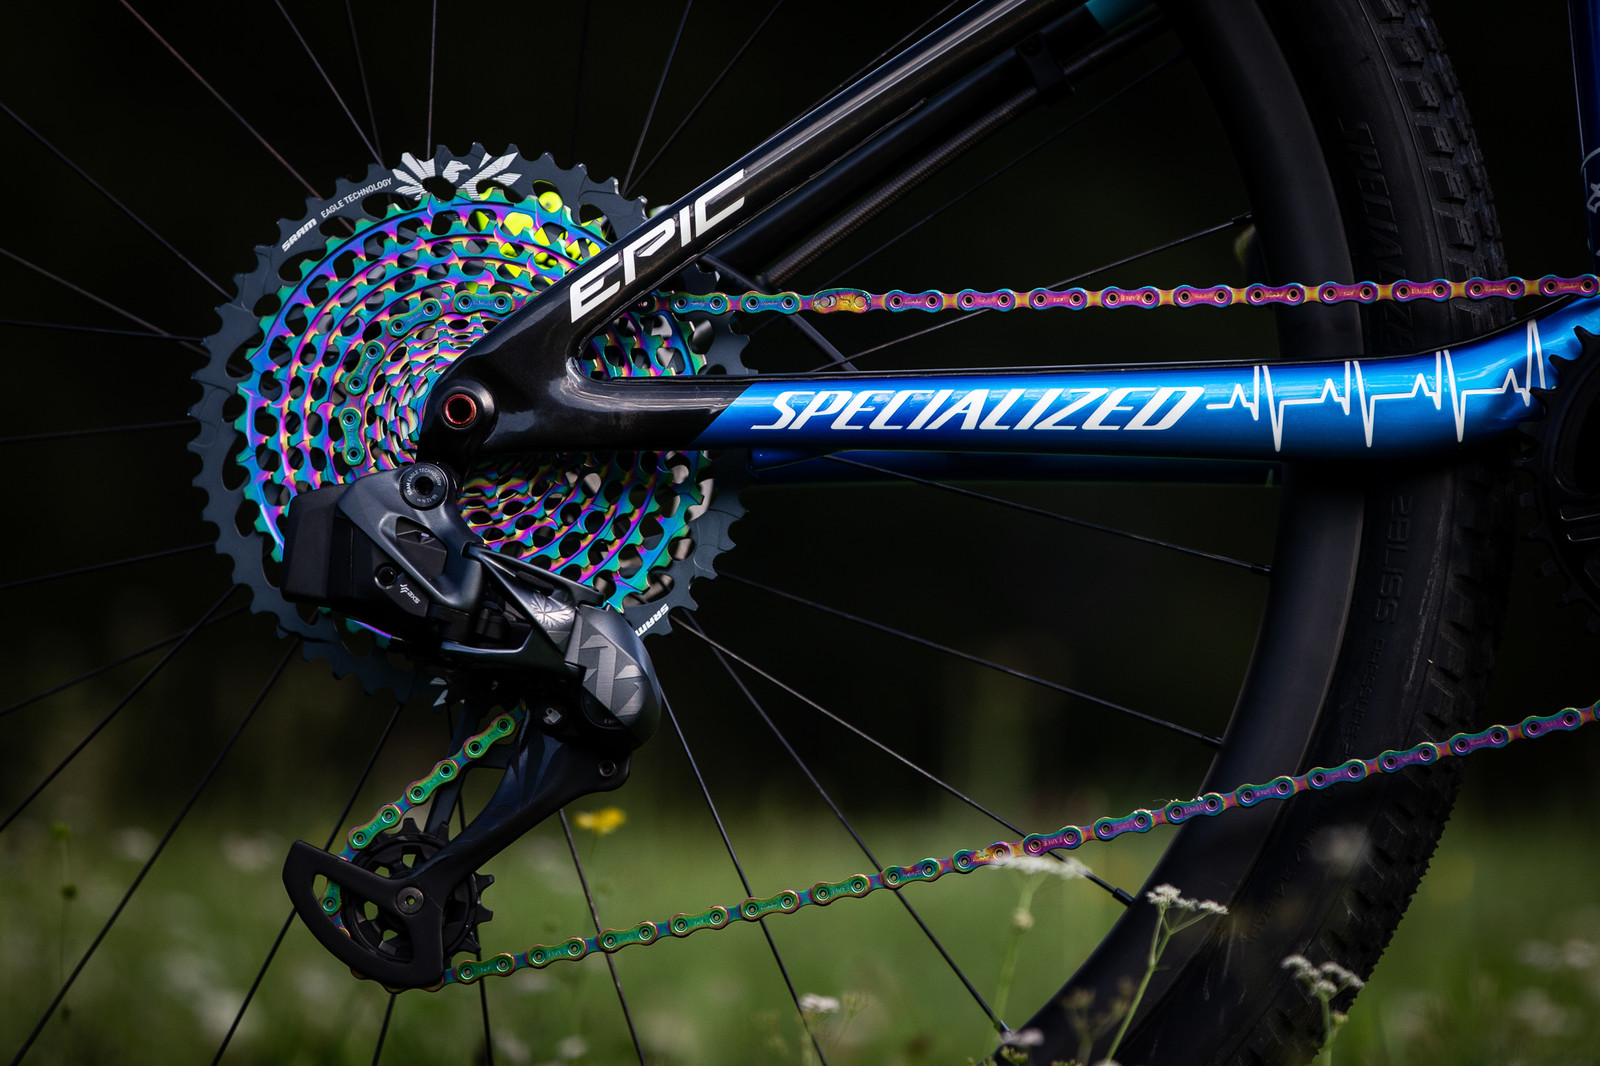 Chris Blevins' Specialized Epic for 2019 World Champs Cross Country - 2019 World Championships Cross Country Race Bikes from Specialized - Mountain Biking Pictures - Vital MTB